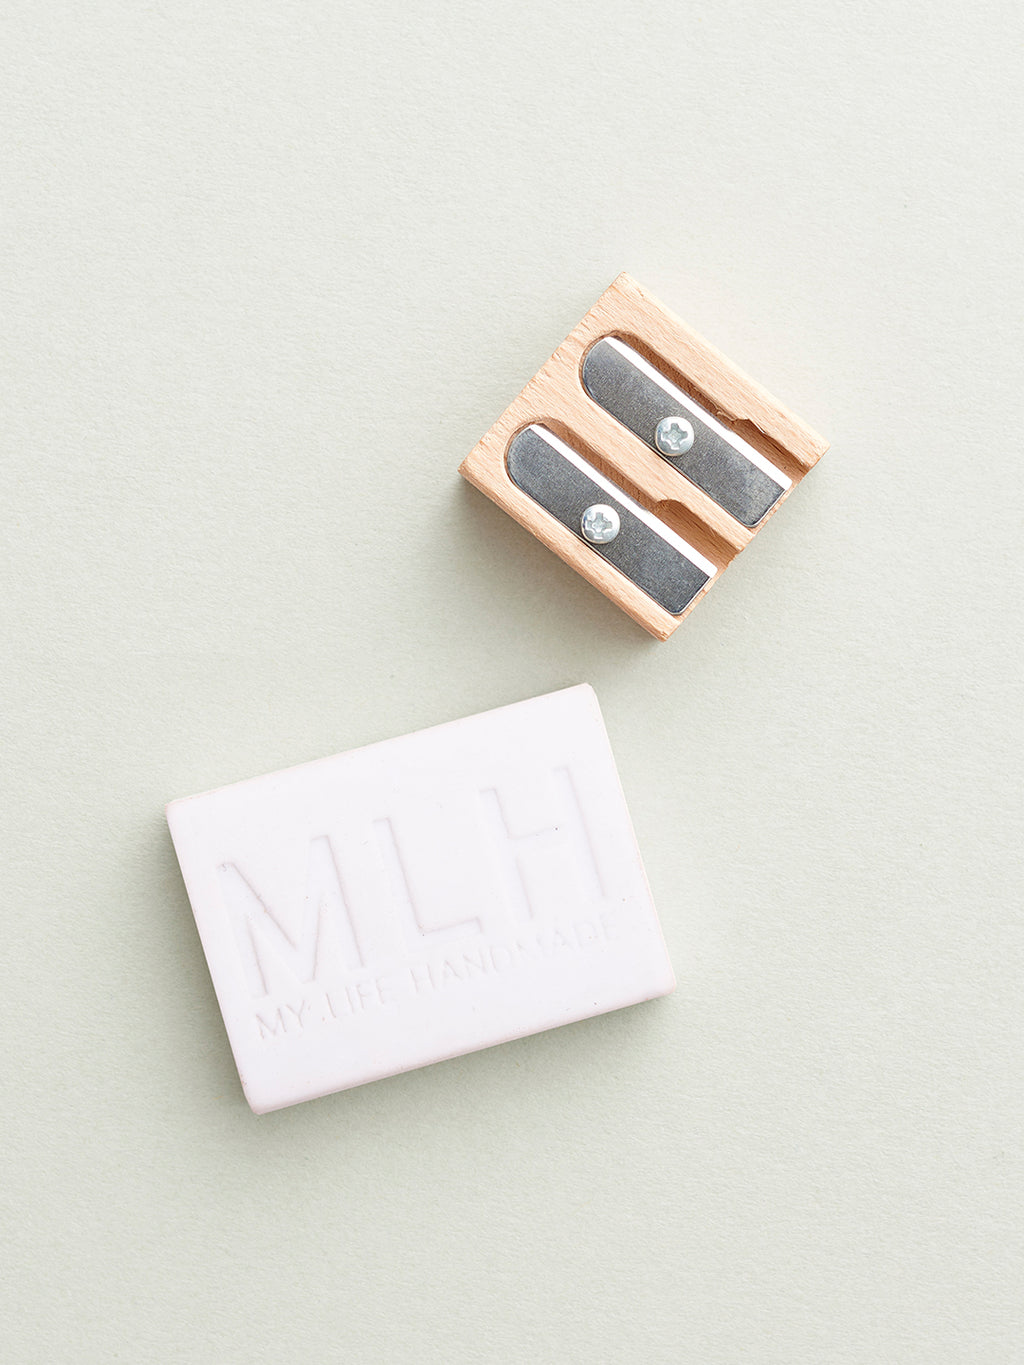 Pencil Sharpener and White Rubber Set - My Life Handmade